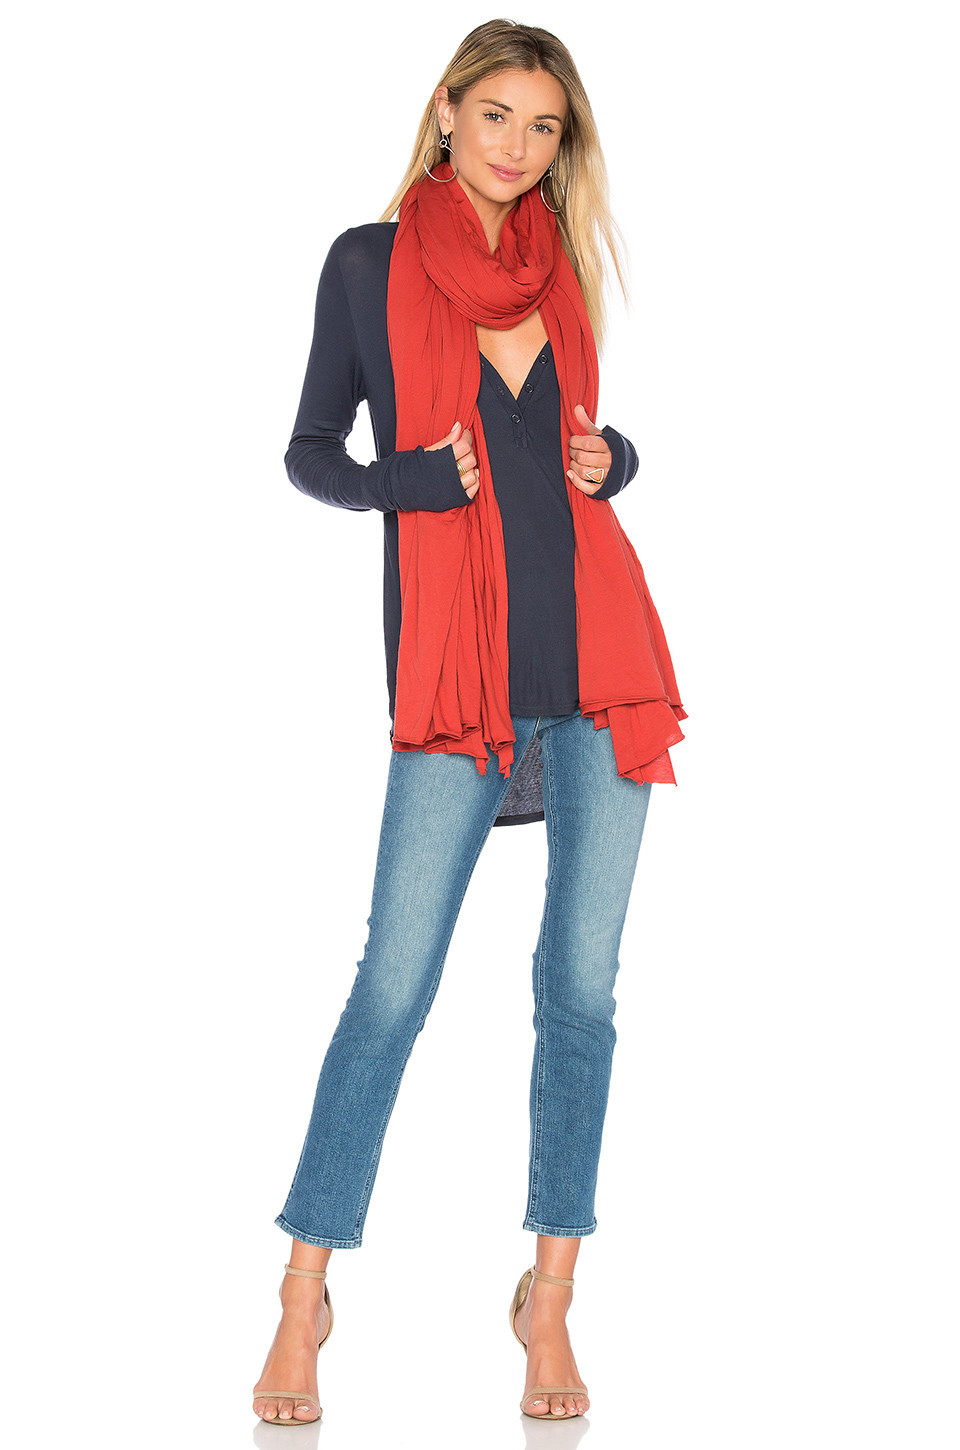 LA Made Zingo Scarf in red